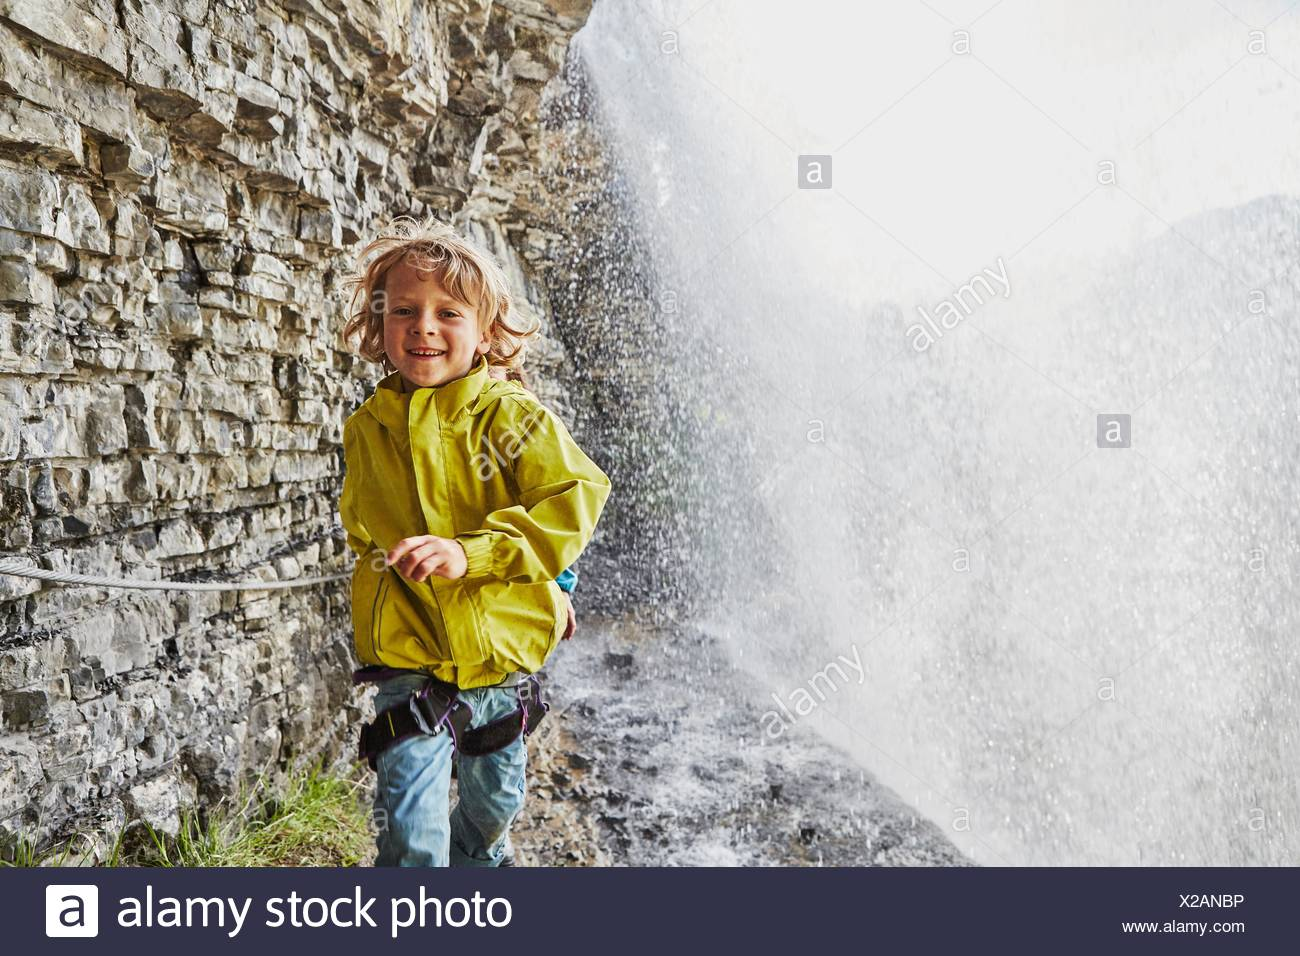 Young boy walking underneath waterfall, smiling - Stock Image